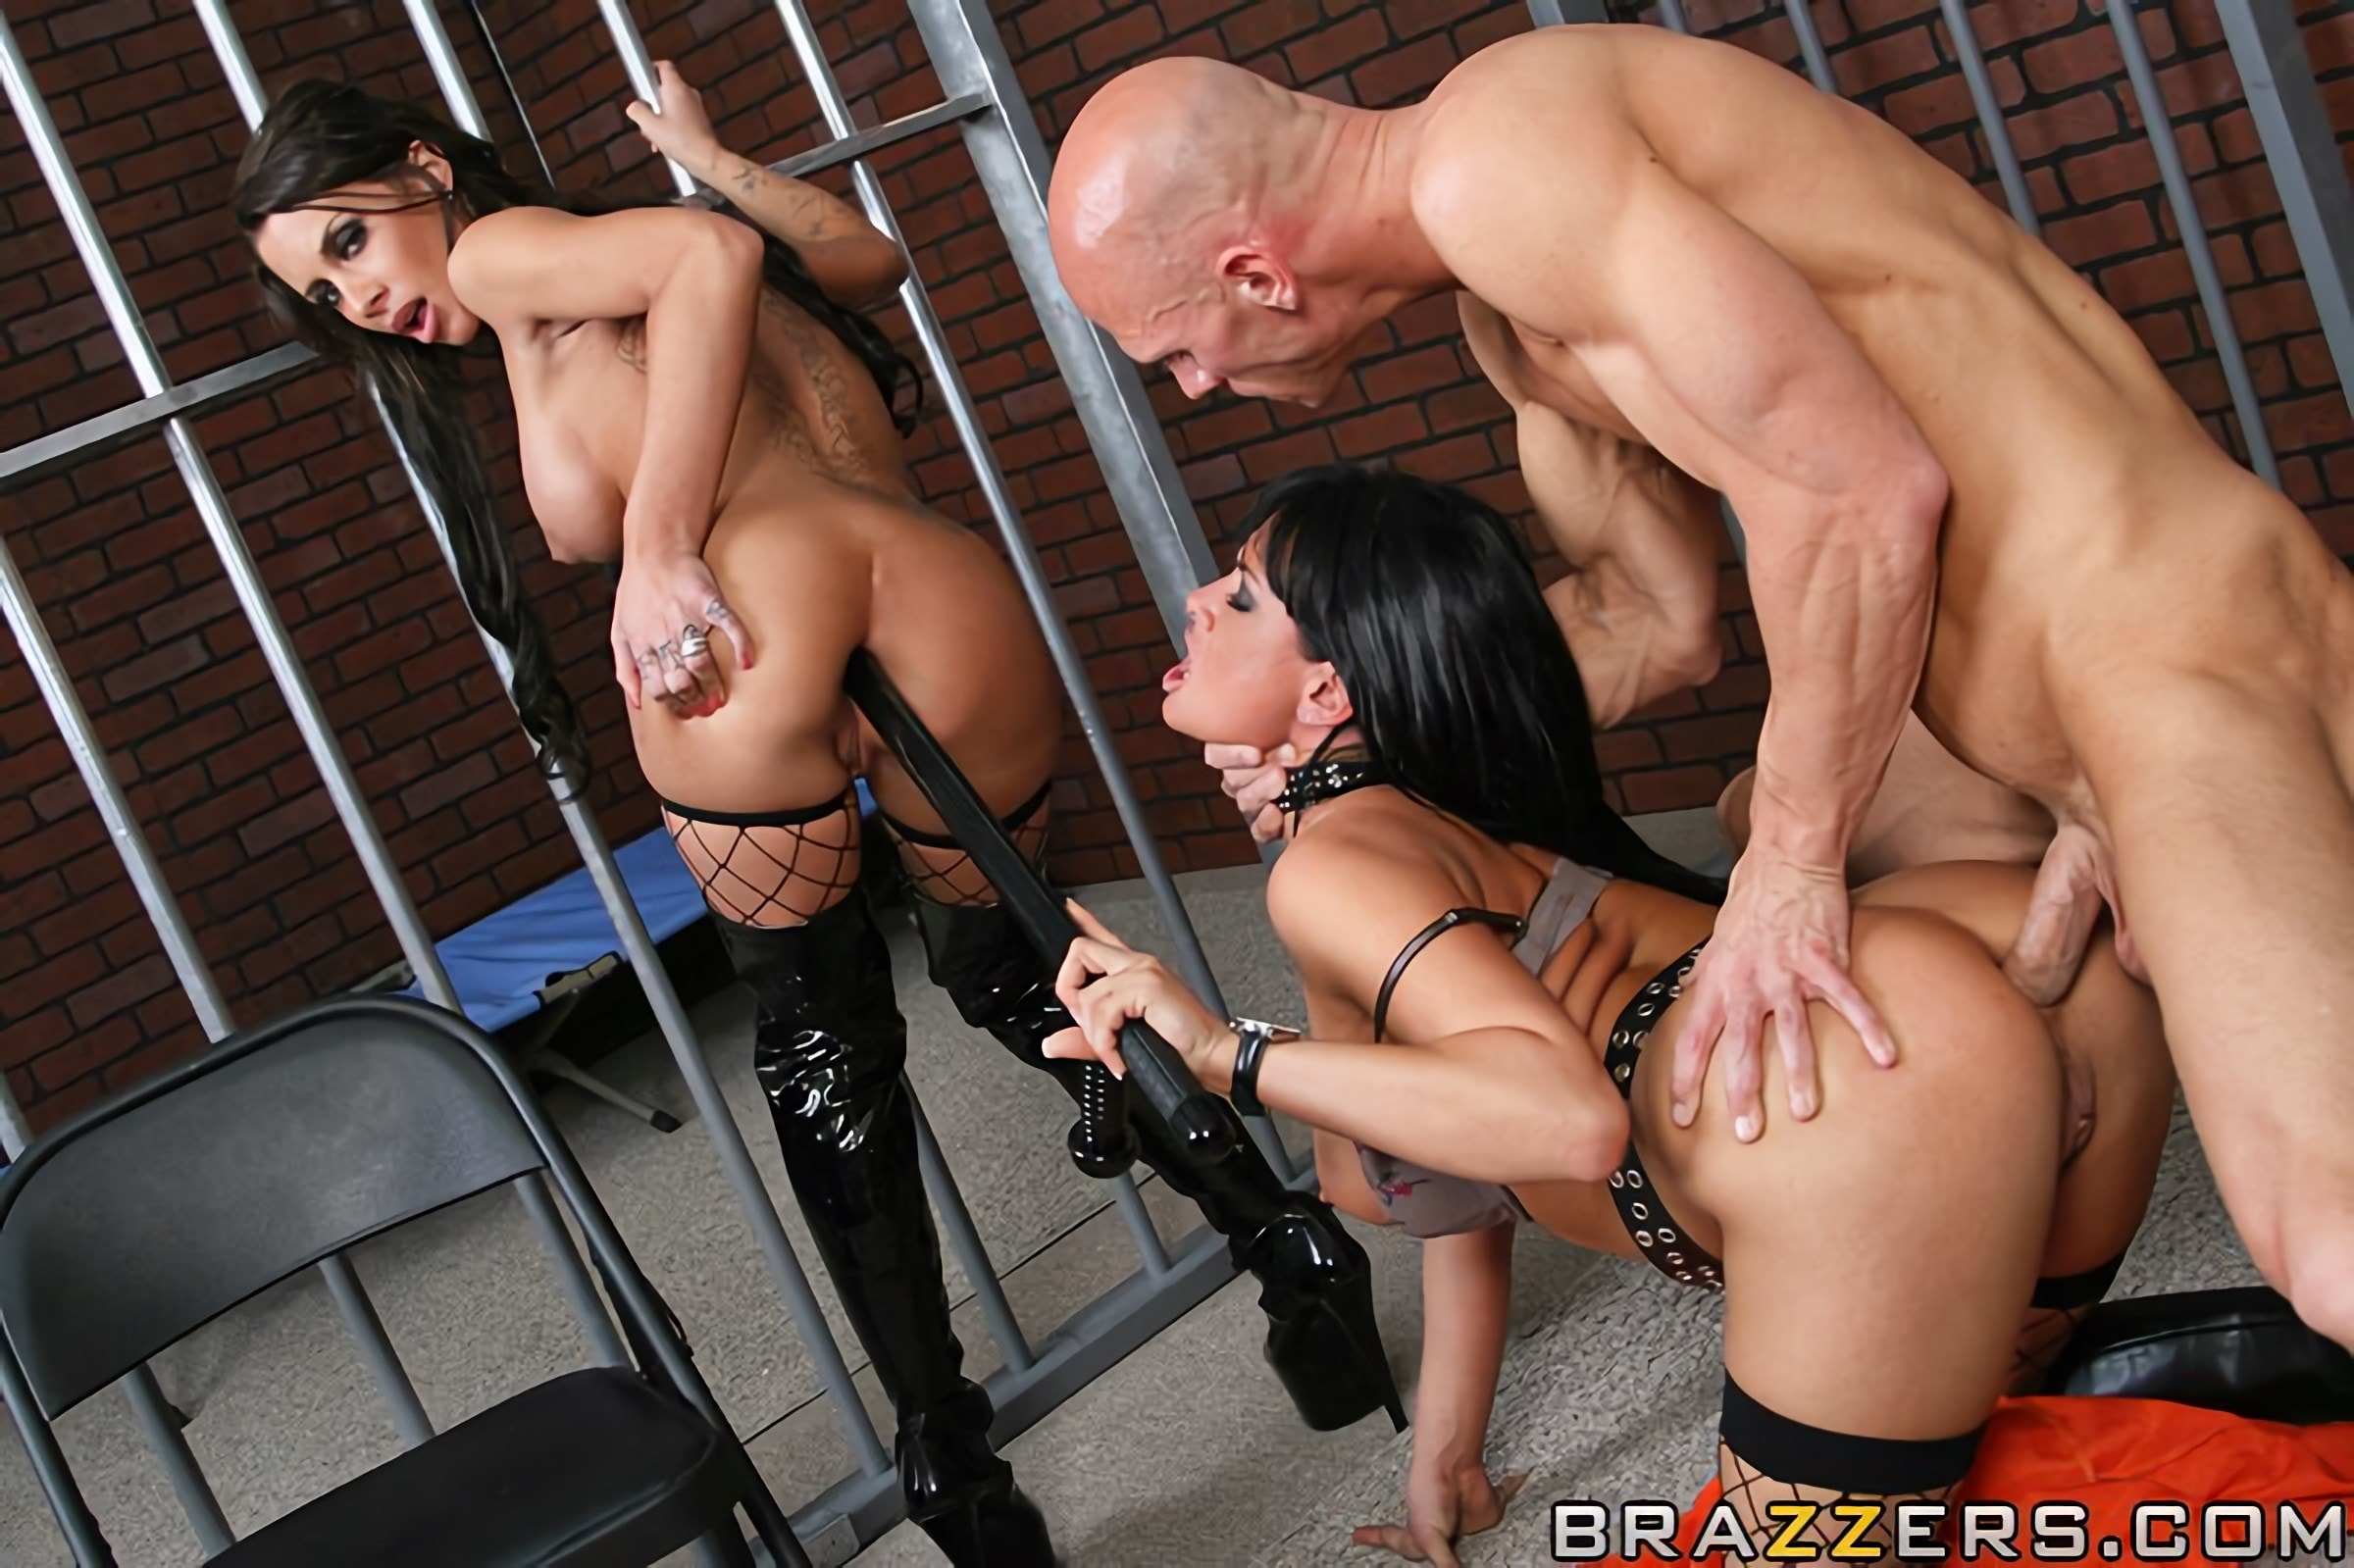 Sex after prison, femdom stories facesit anal